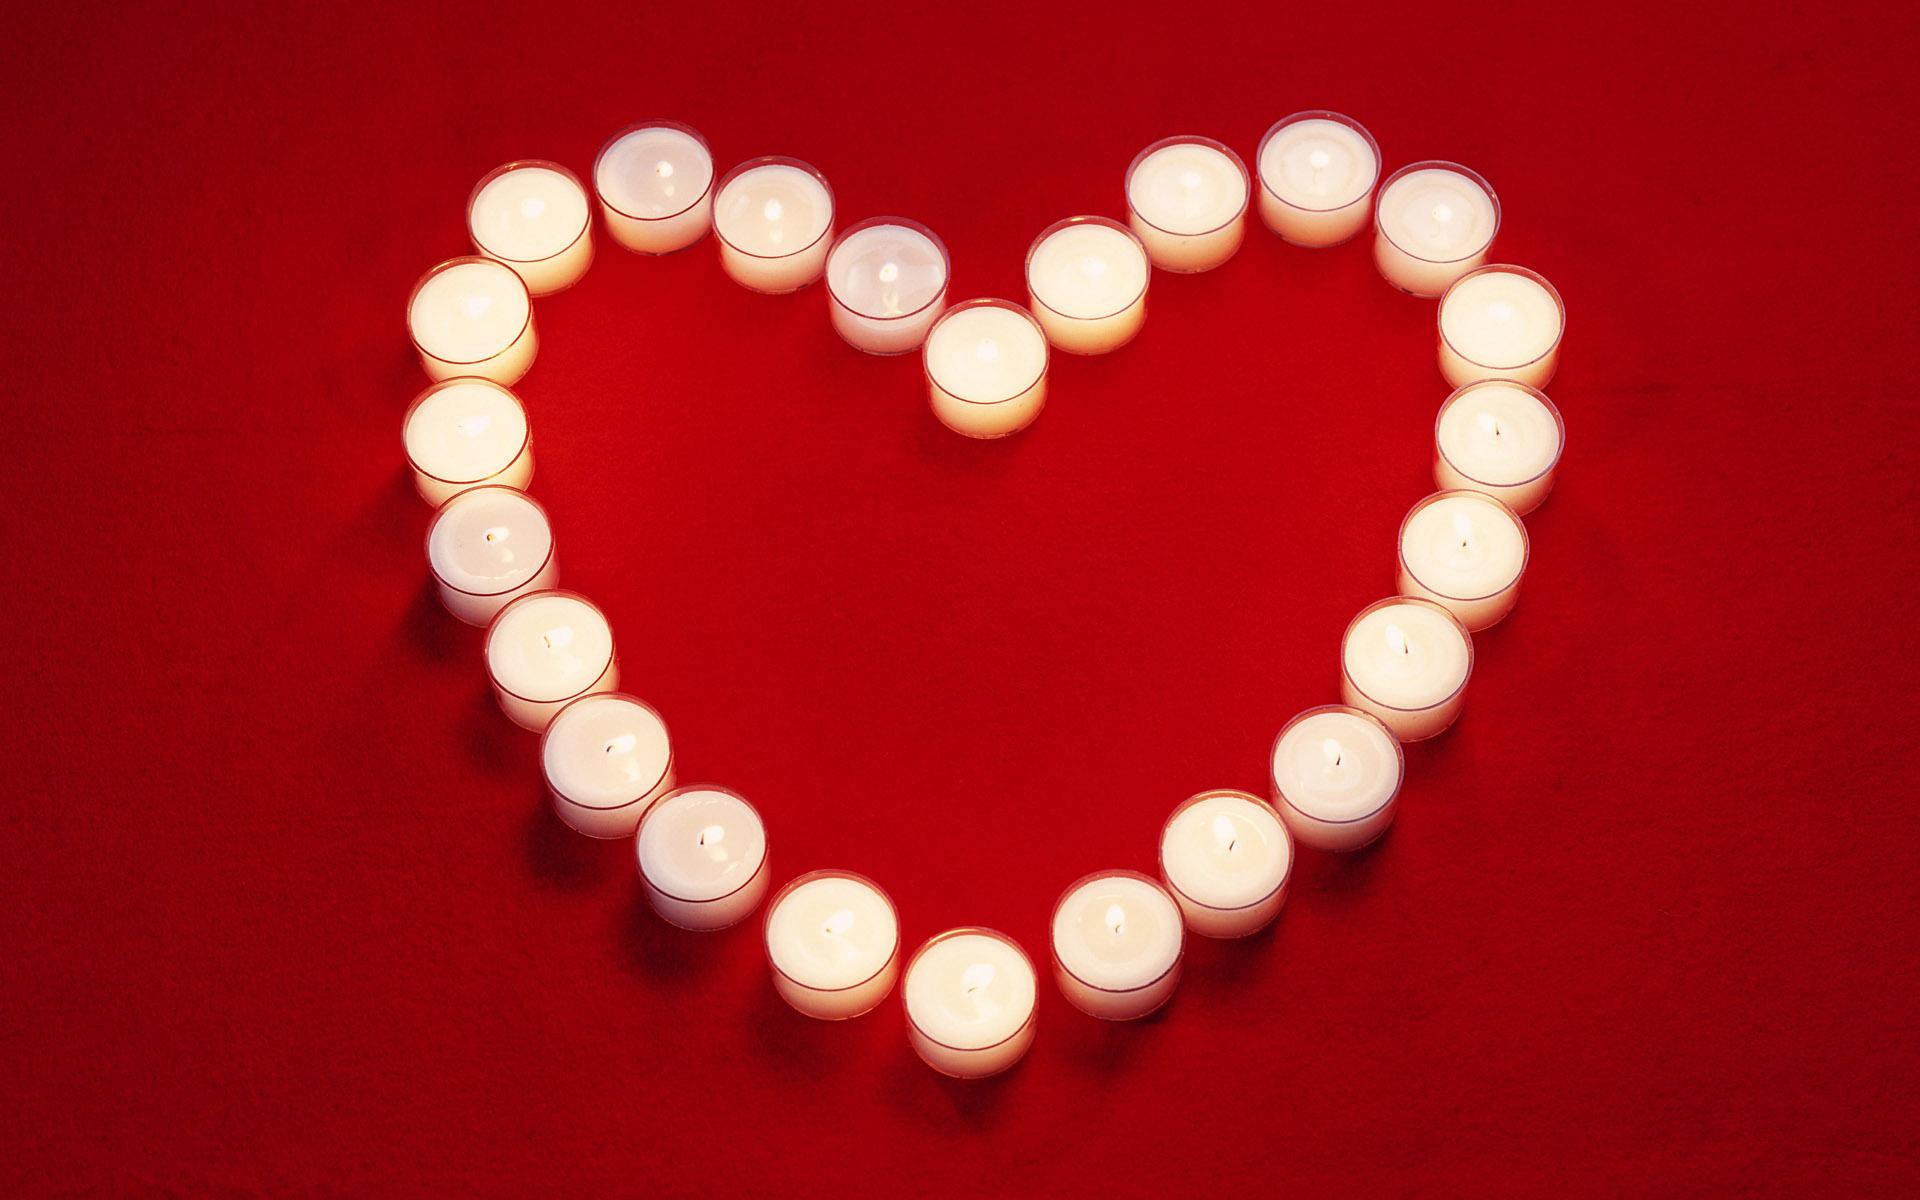 Candle wallpaper 12022